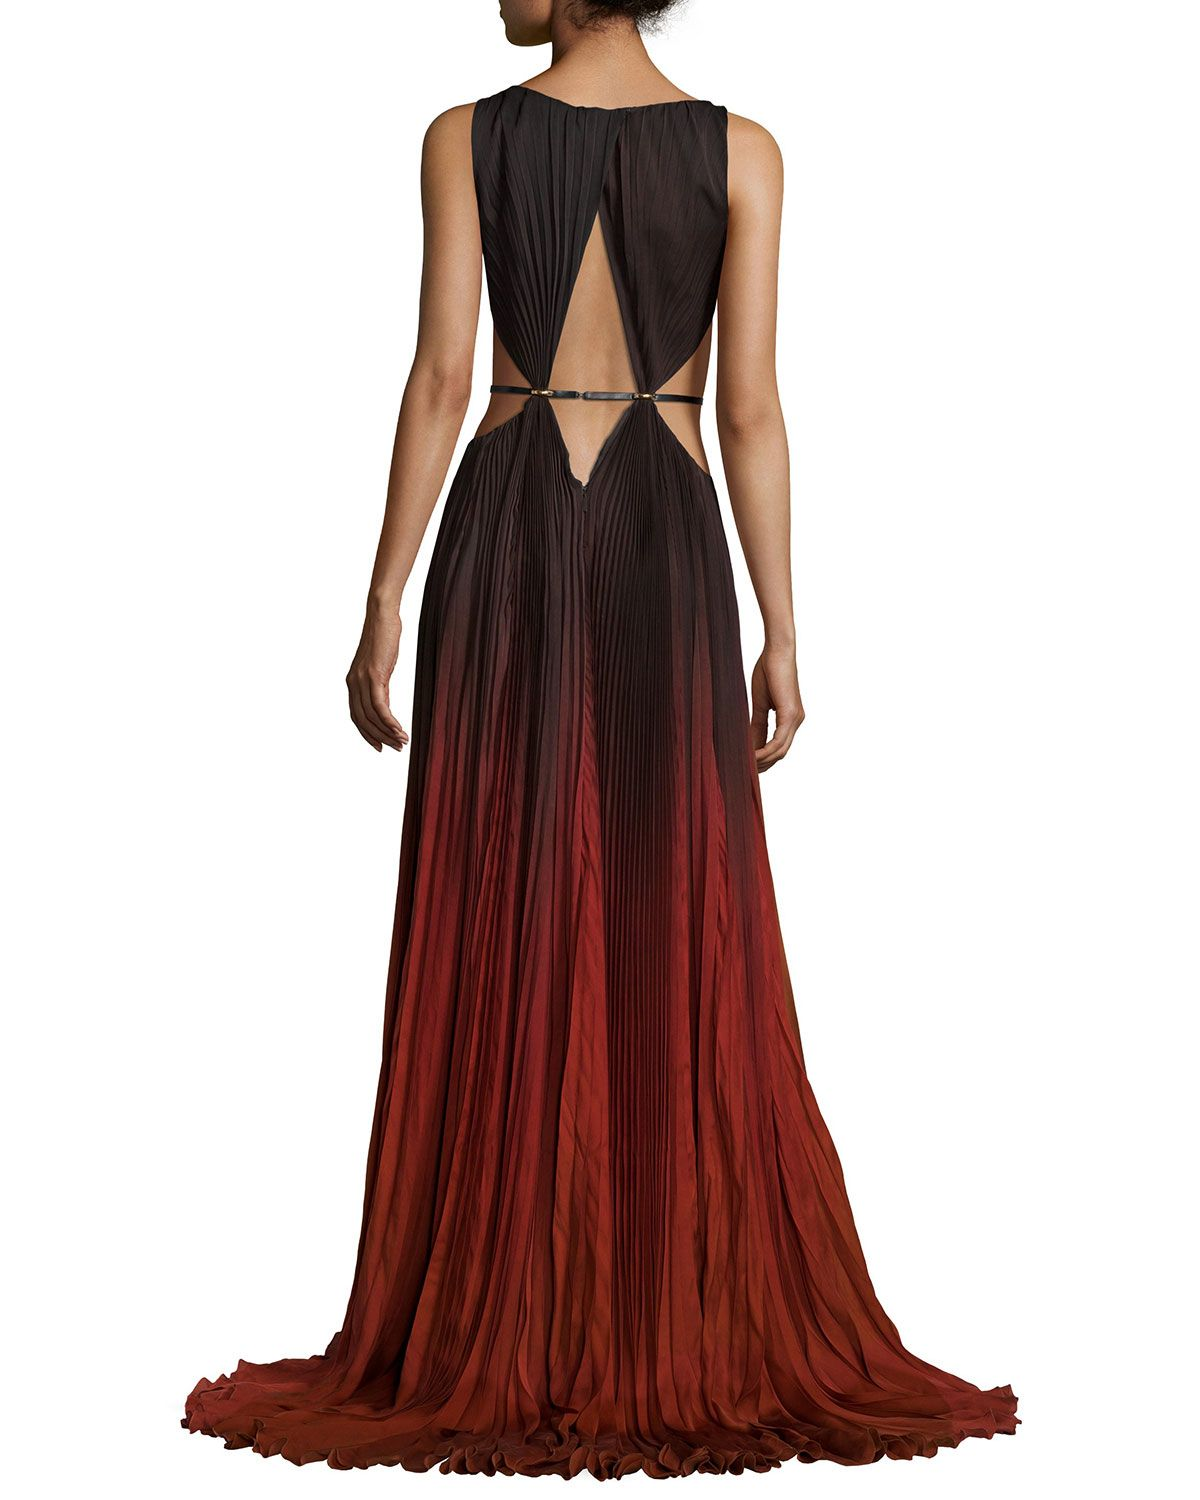 Red ombre gown vestidos matizados pinterest ombre gown red